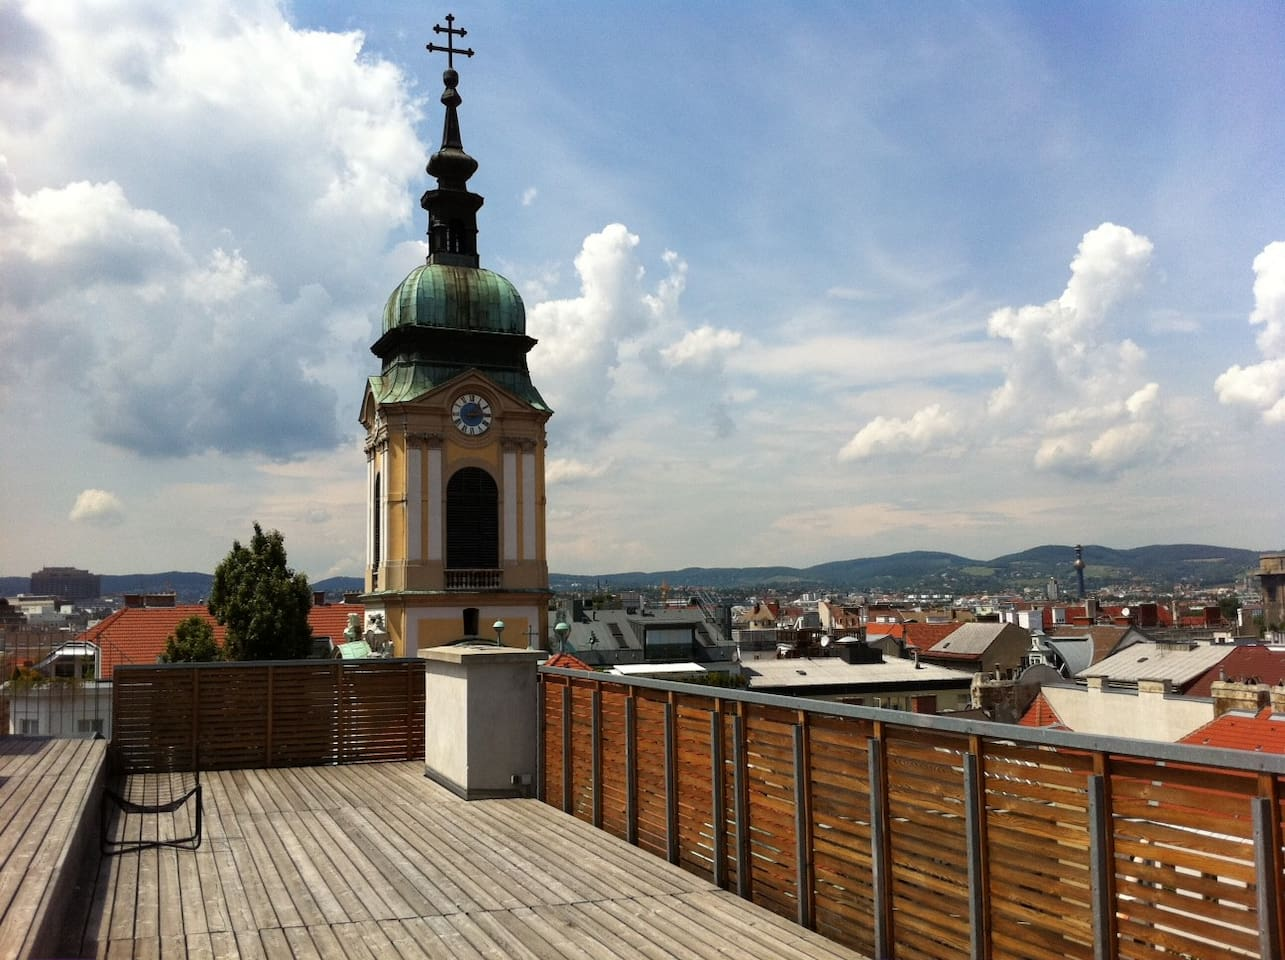 view from the flat roof / church